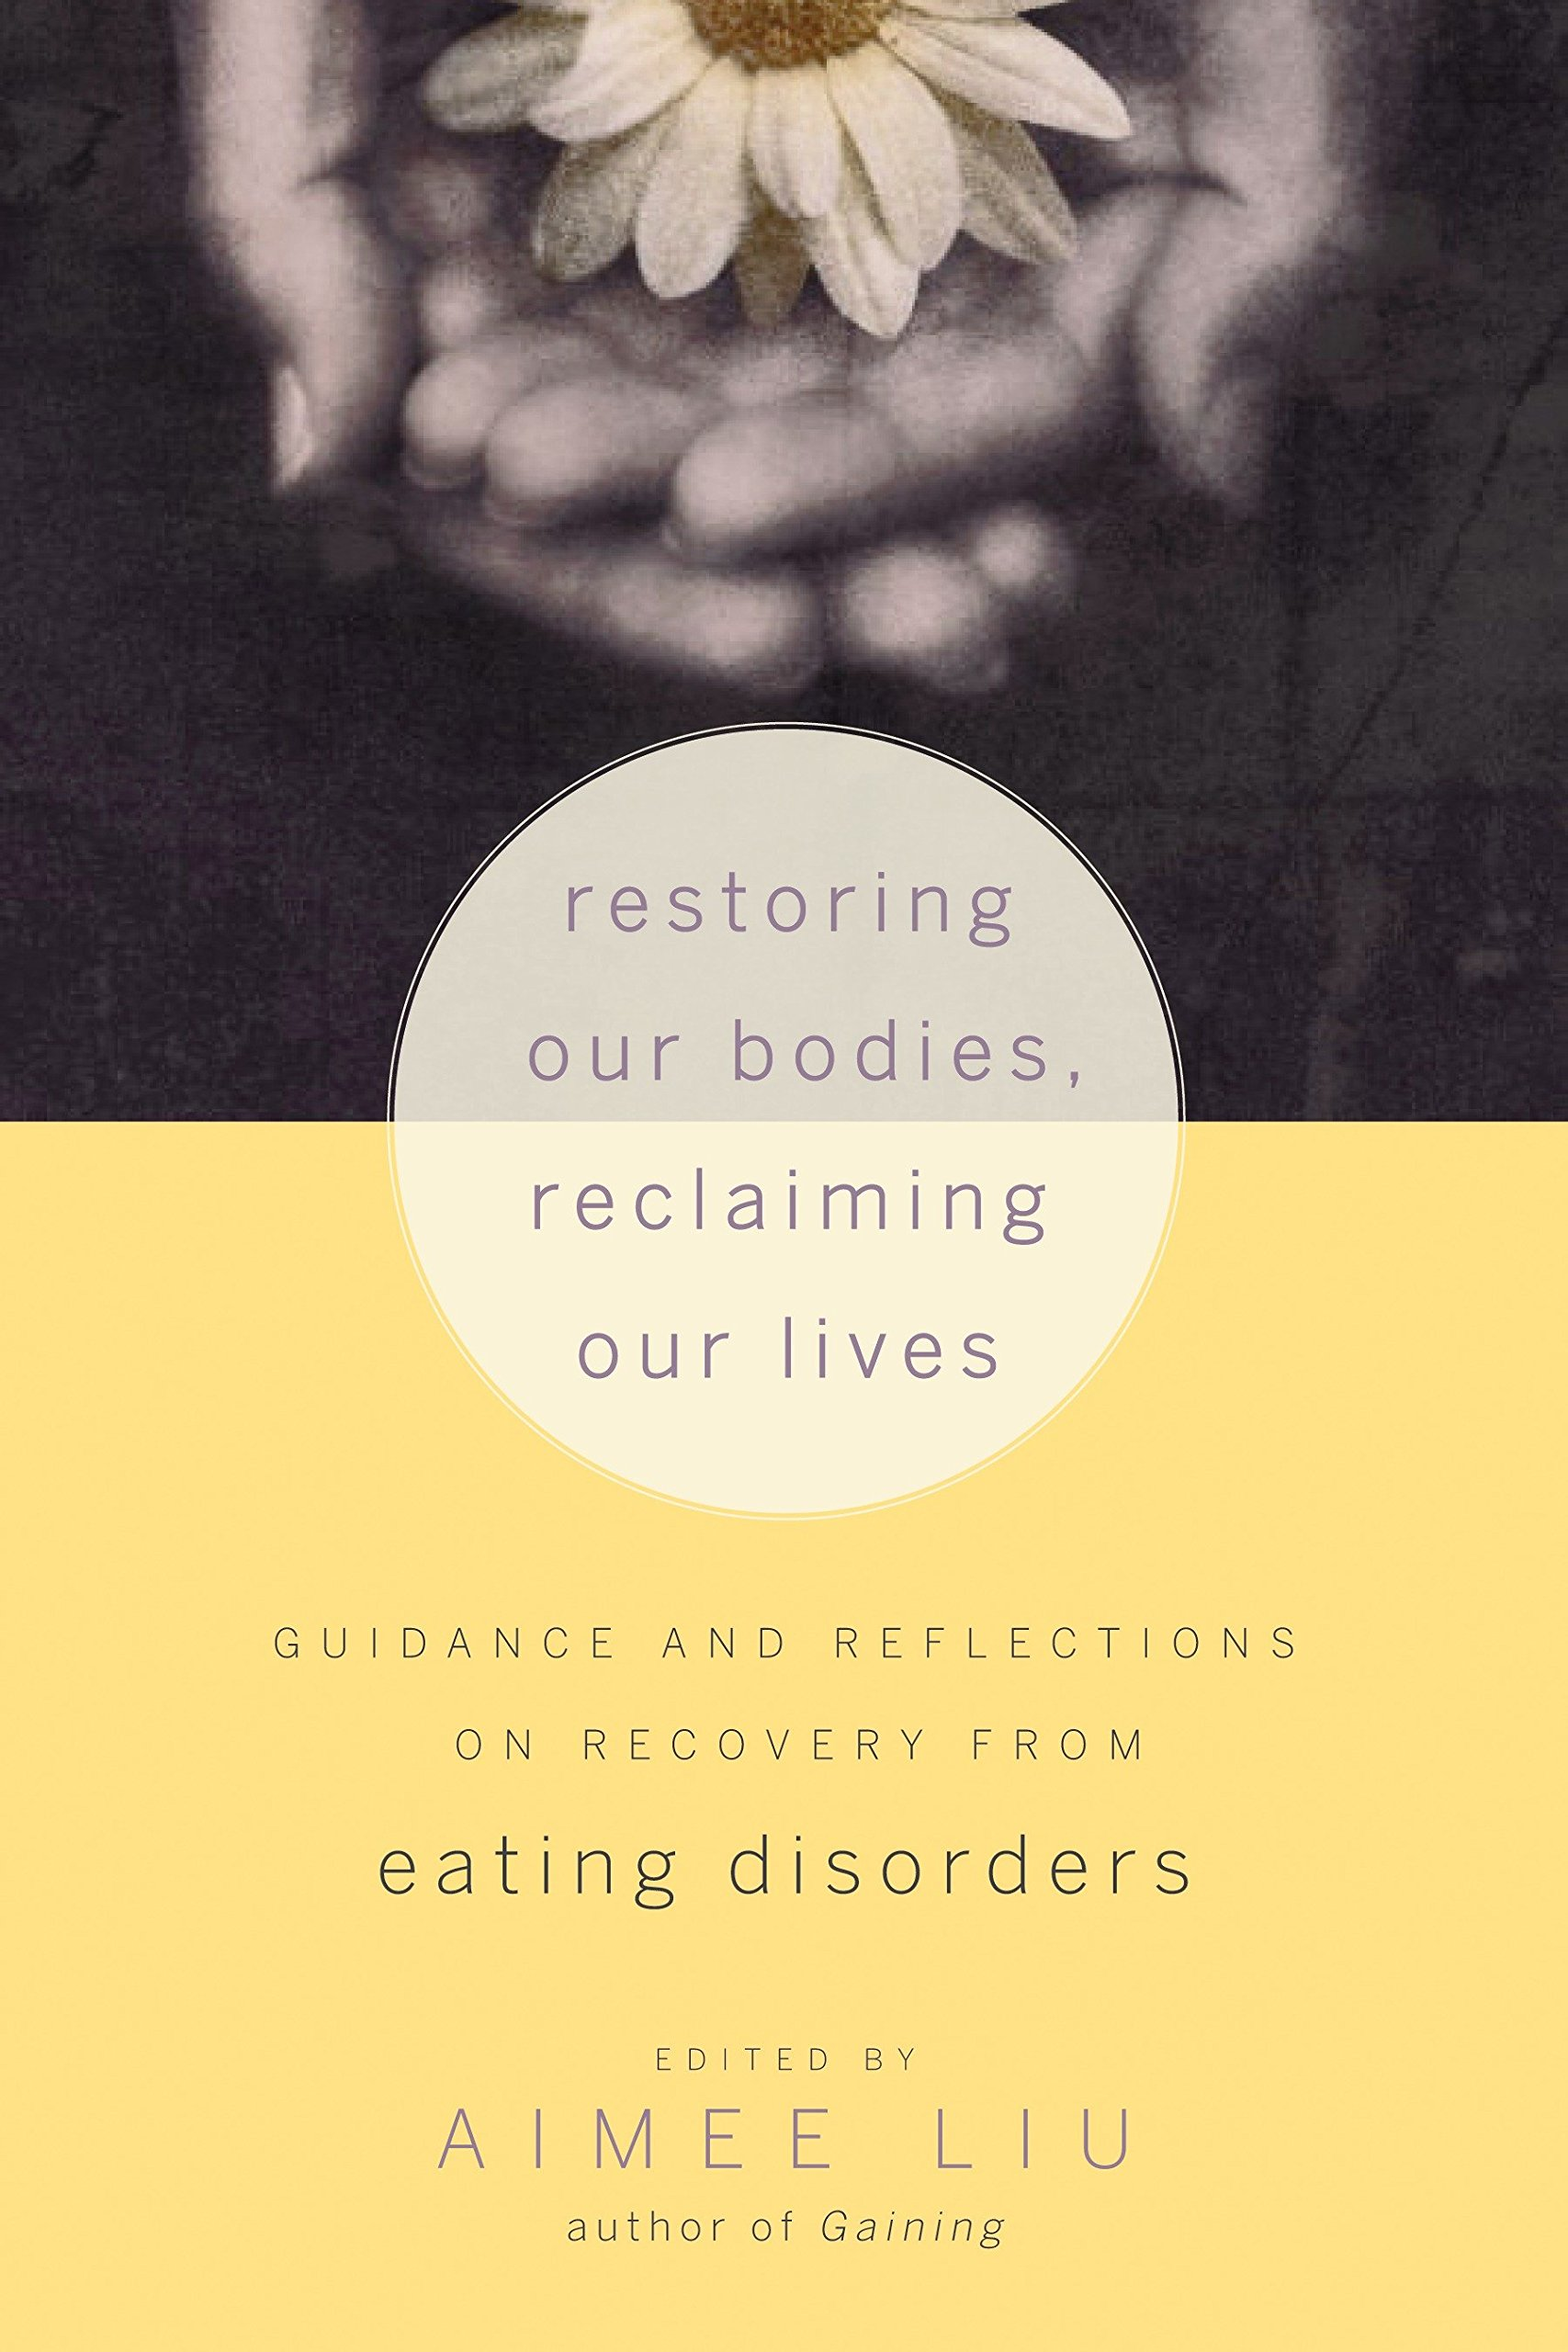 Restoring Our Bodies, Reclaiming Our